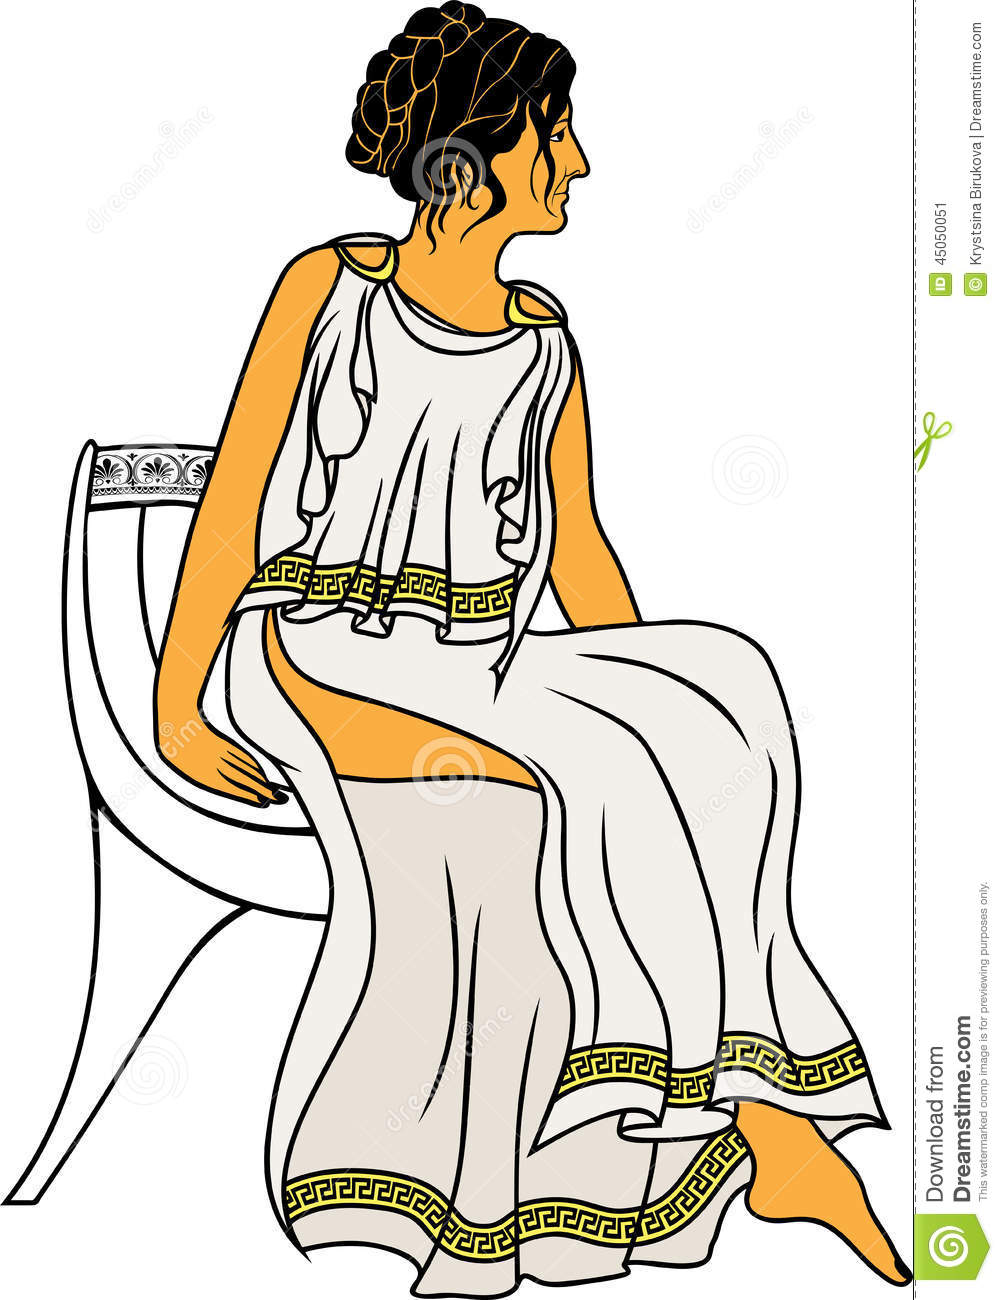 Ancient greek chair - Ancient Greek Woman Sitting On A Chair Colored Variant